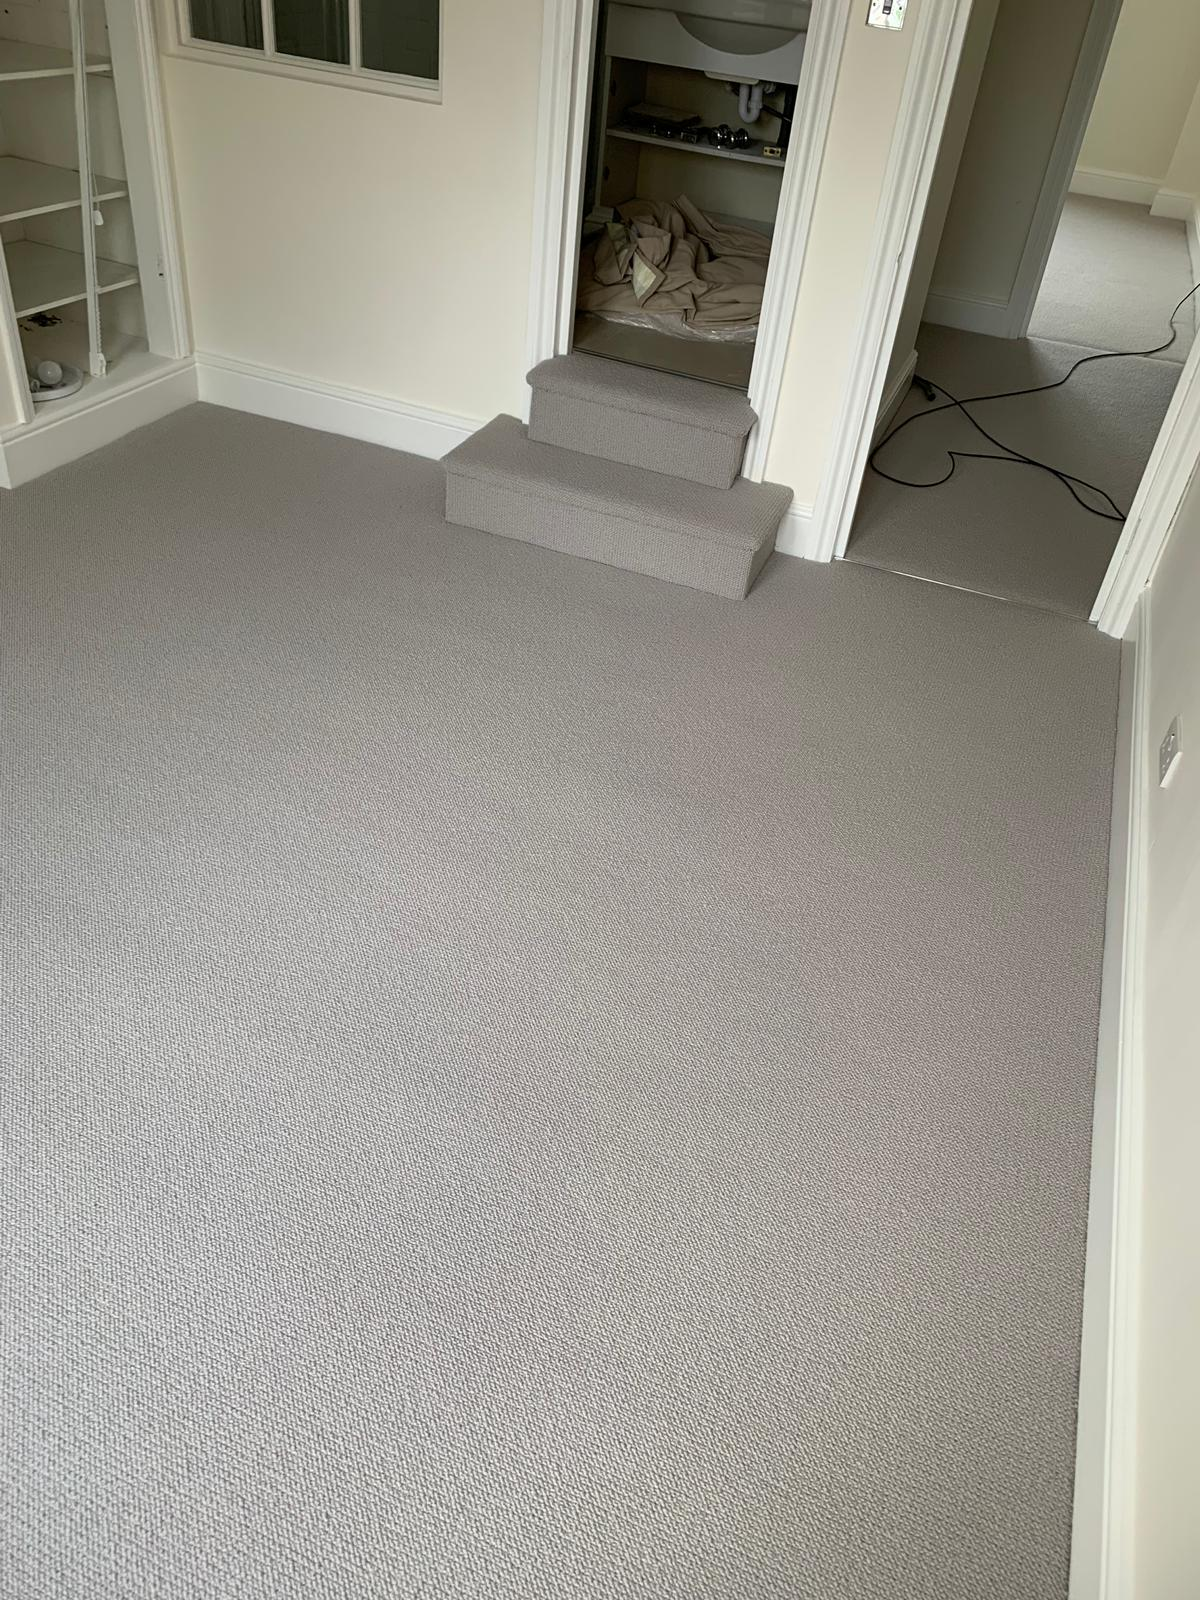 Carpet Installation In Lambeth